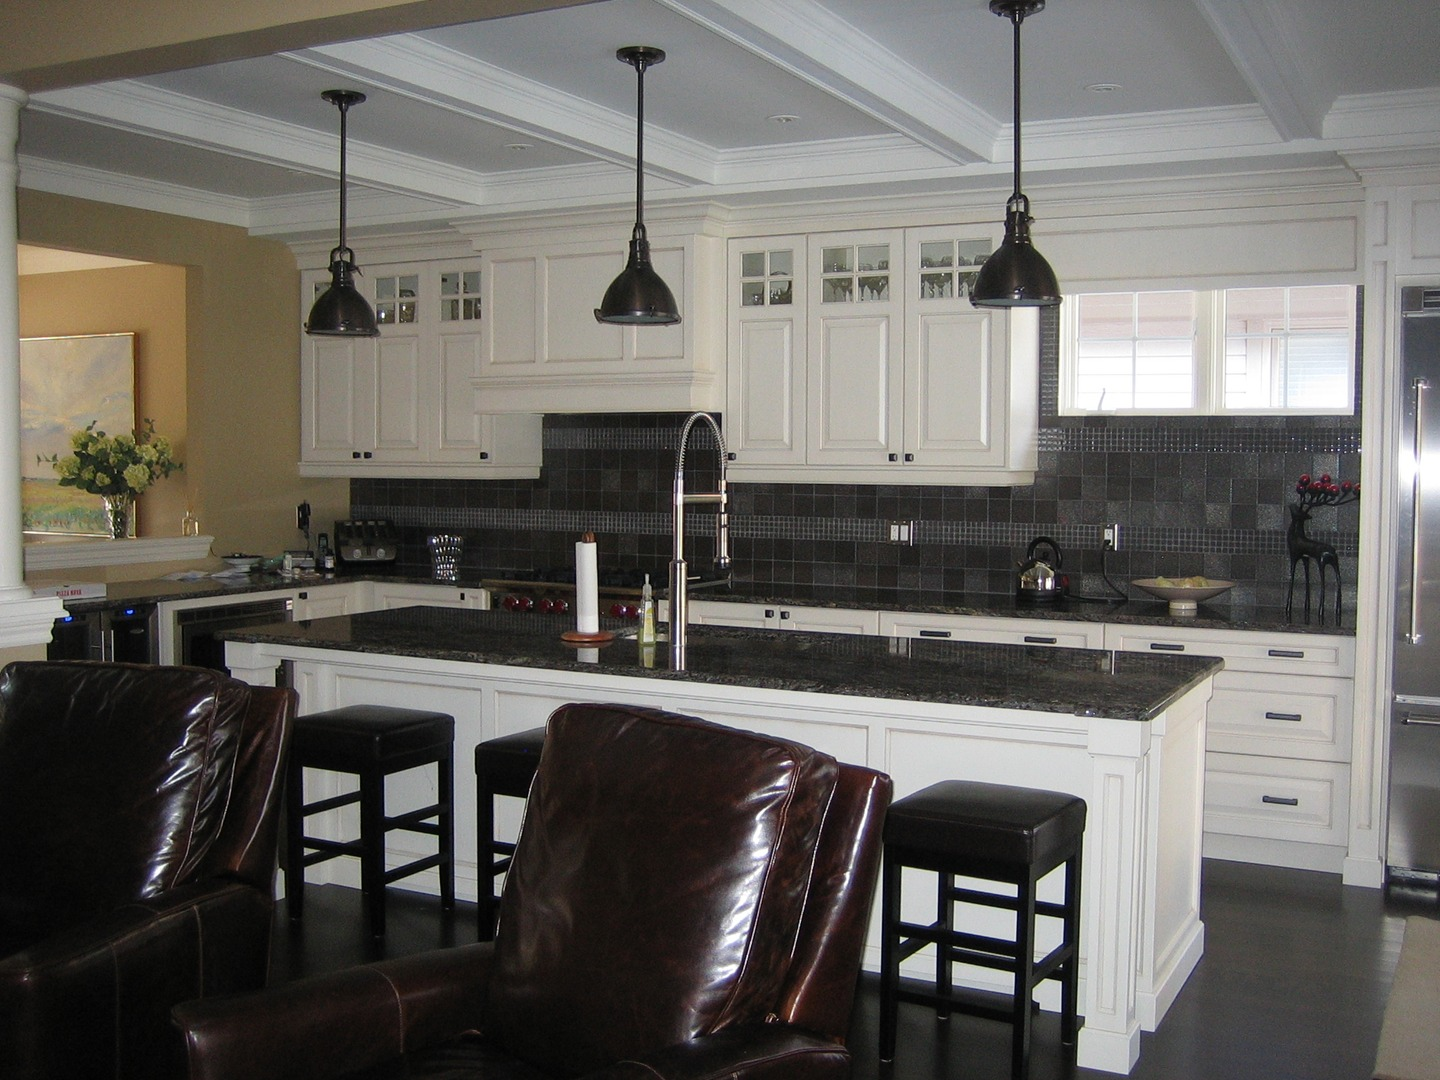 Precise Kitchens And Cabinets Precision Cabinets And Home Renovations